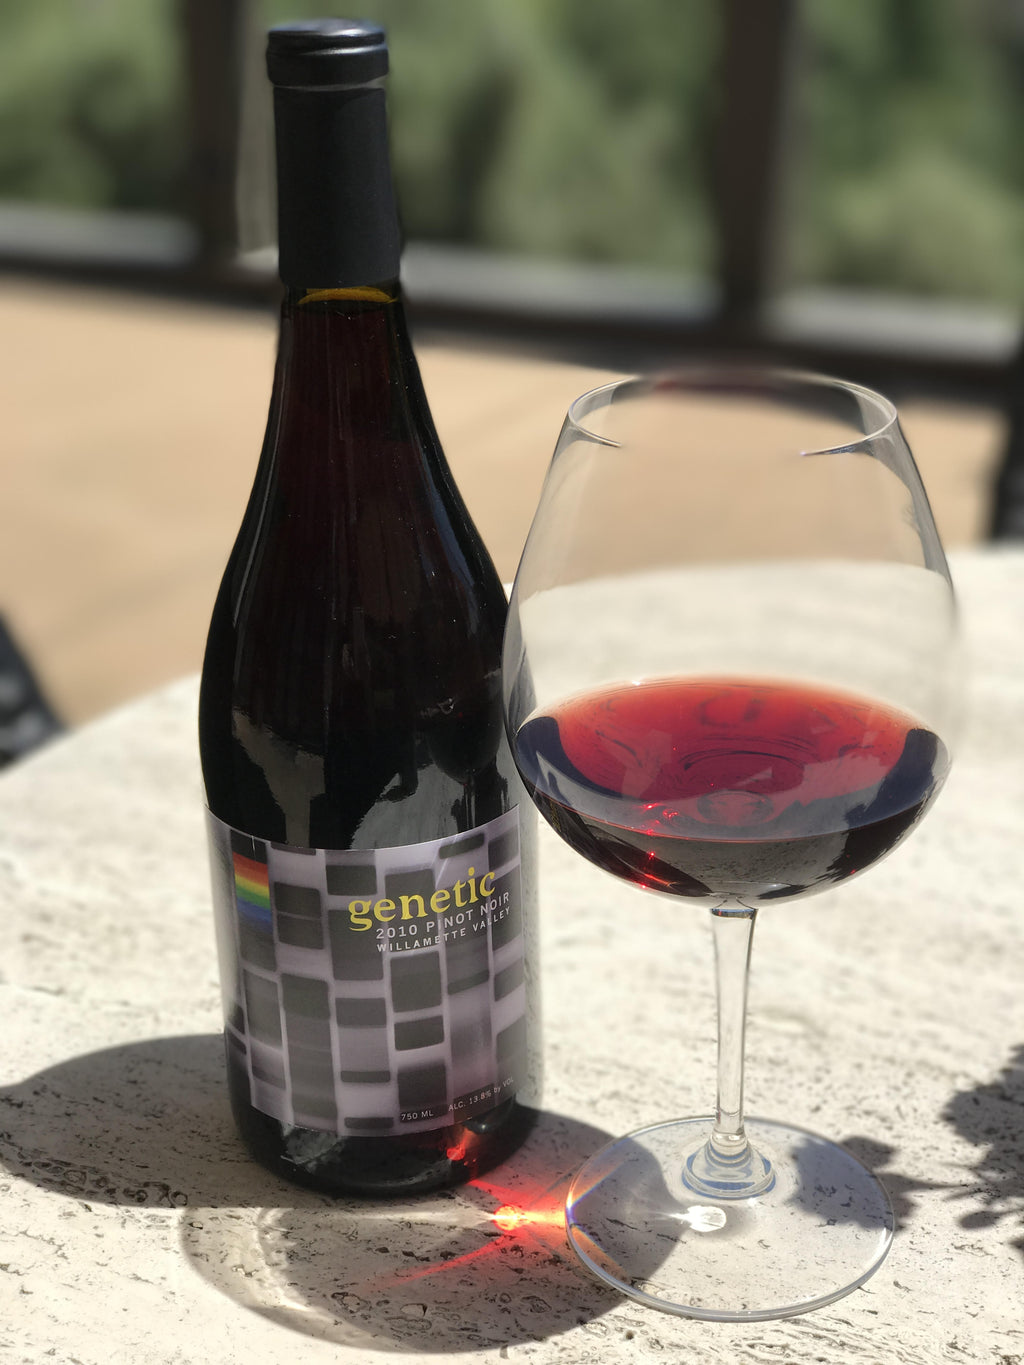 2011 Genetic Pinot Noir - Qorkz